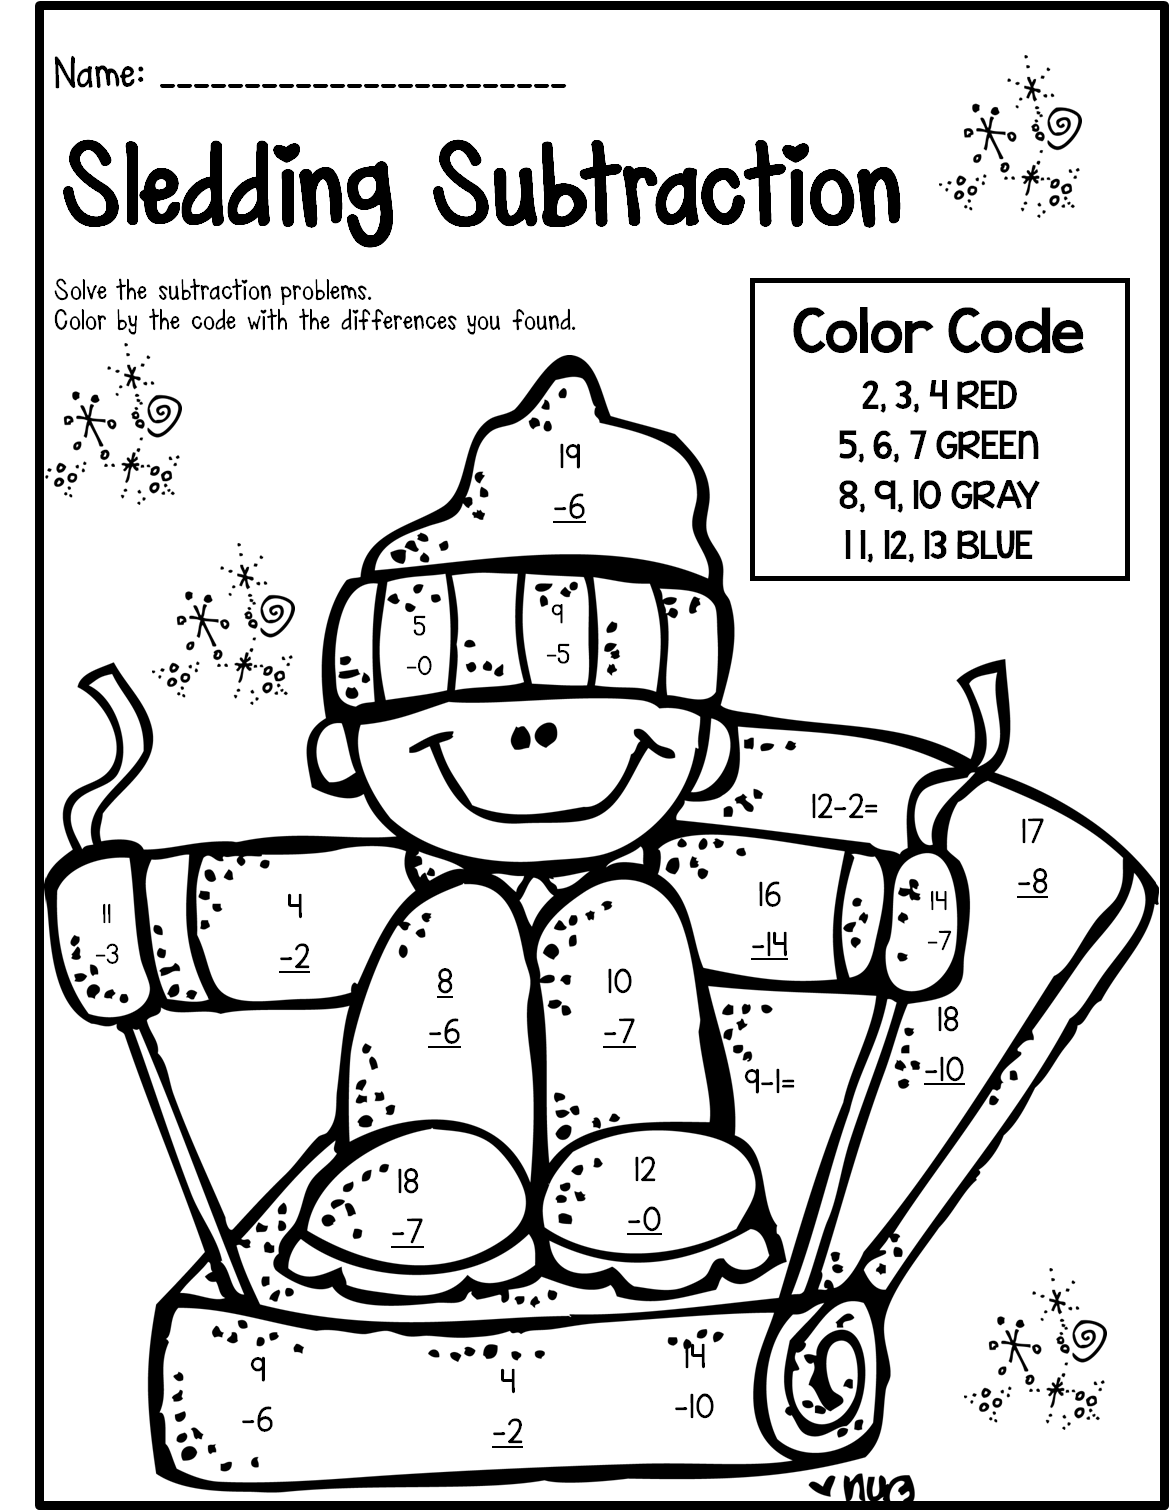 worksheet 1st Grade Math Coloring Worksheets winter math literacy print and go 2nd grade ccss mathematics pin second fu for holiday time good leatnign winter